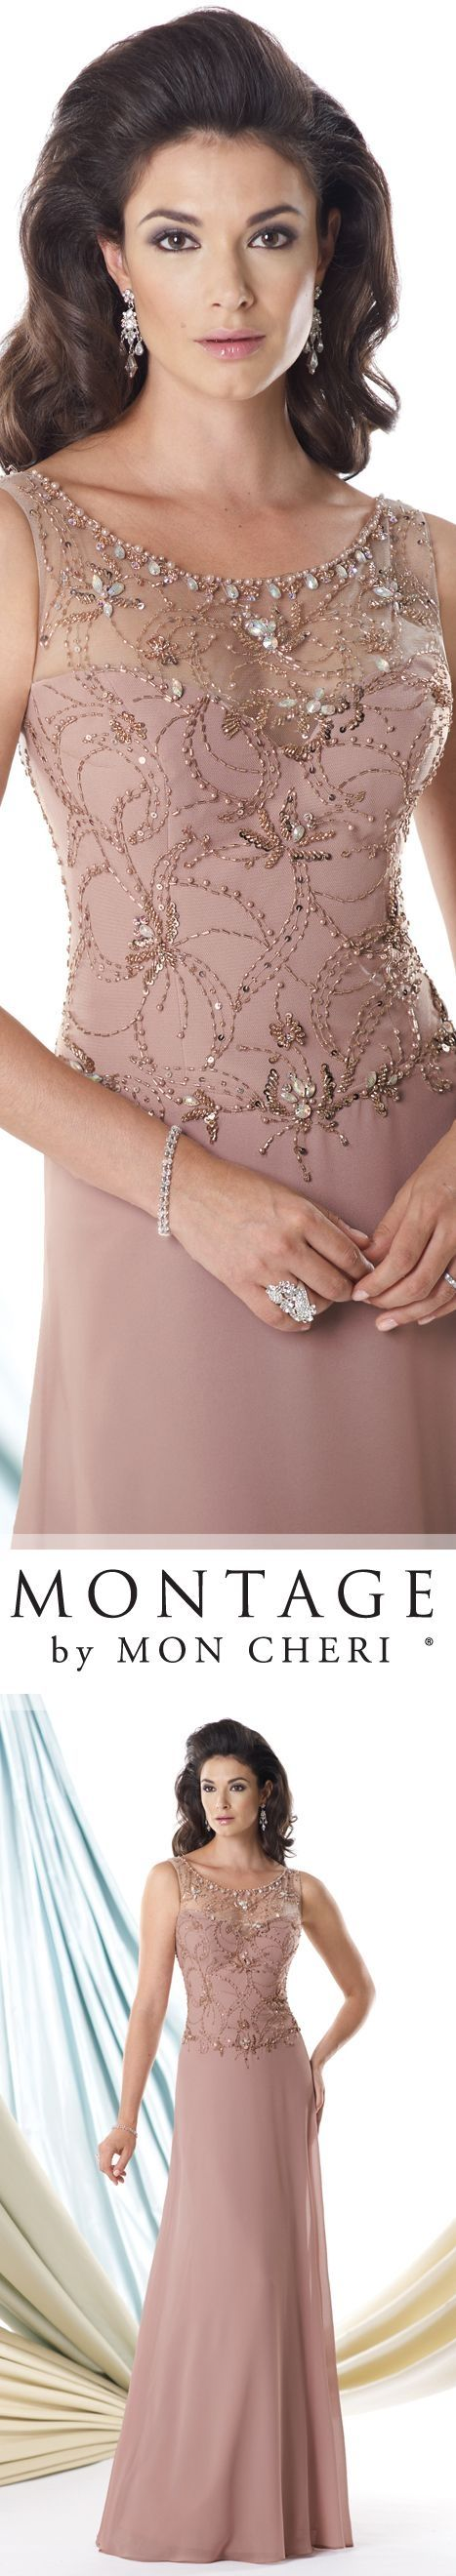 best dress images on pinterest classy dress evening gowns and